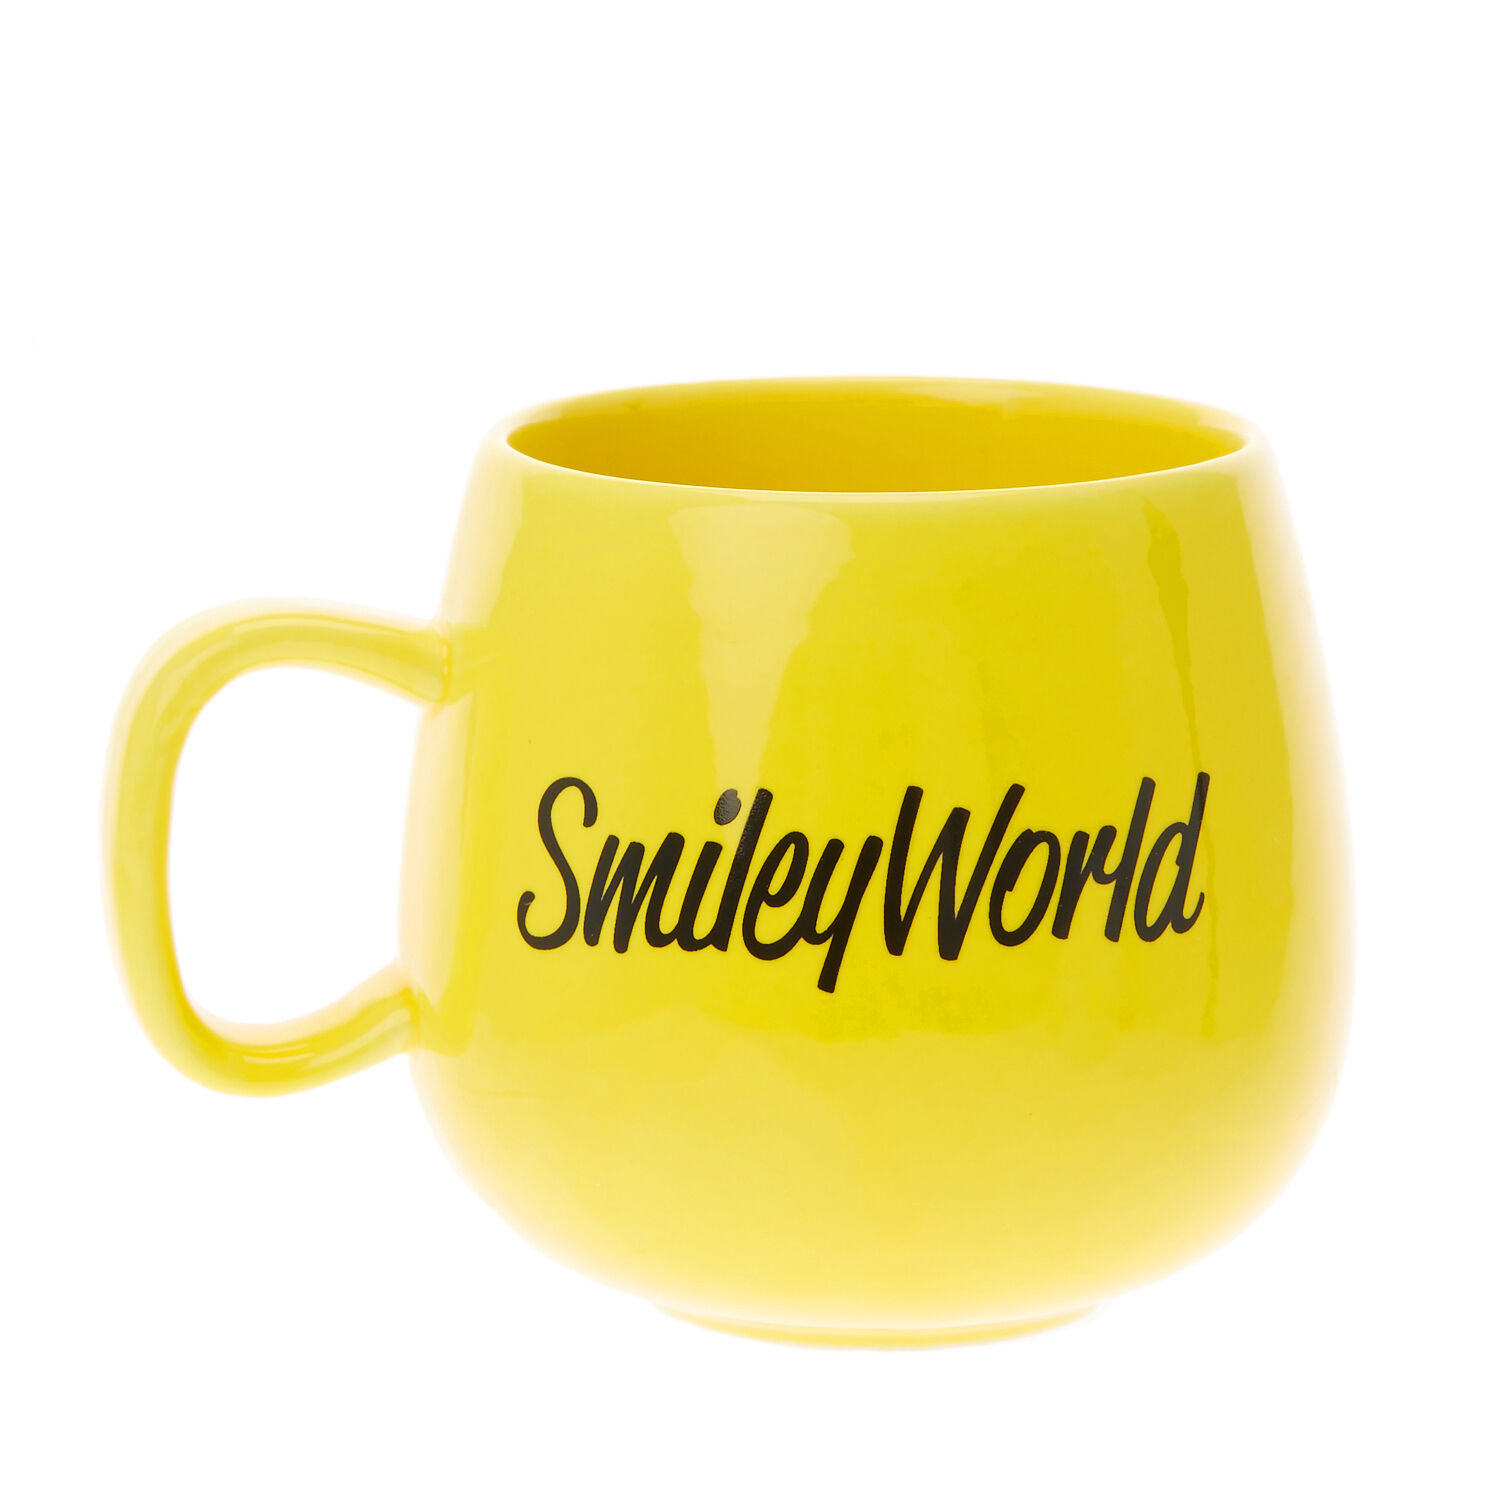 Smiley Face World Mug Yellow Yellow AR3L4jc5qS